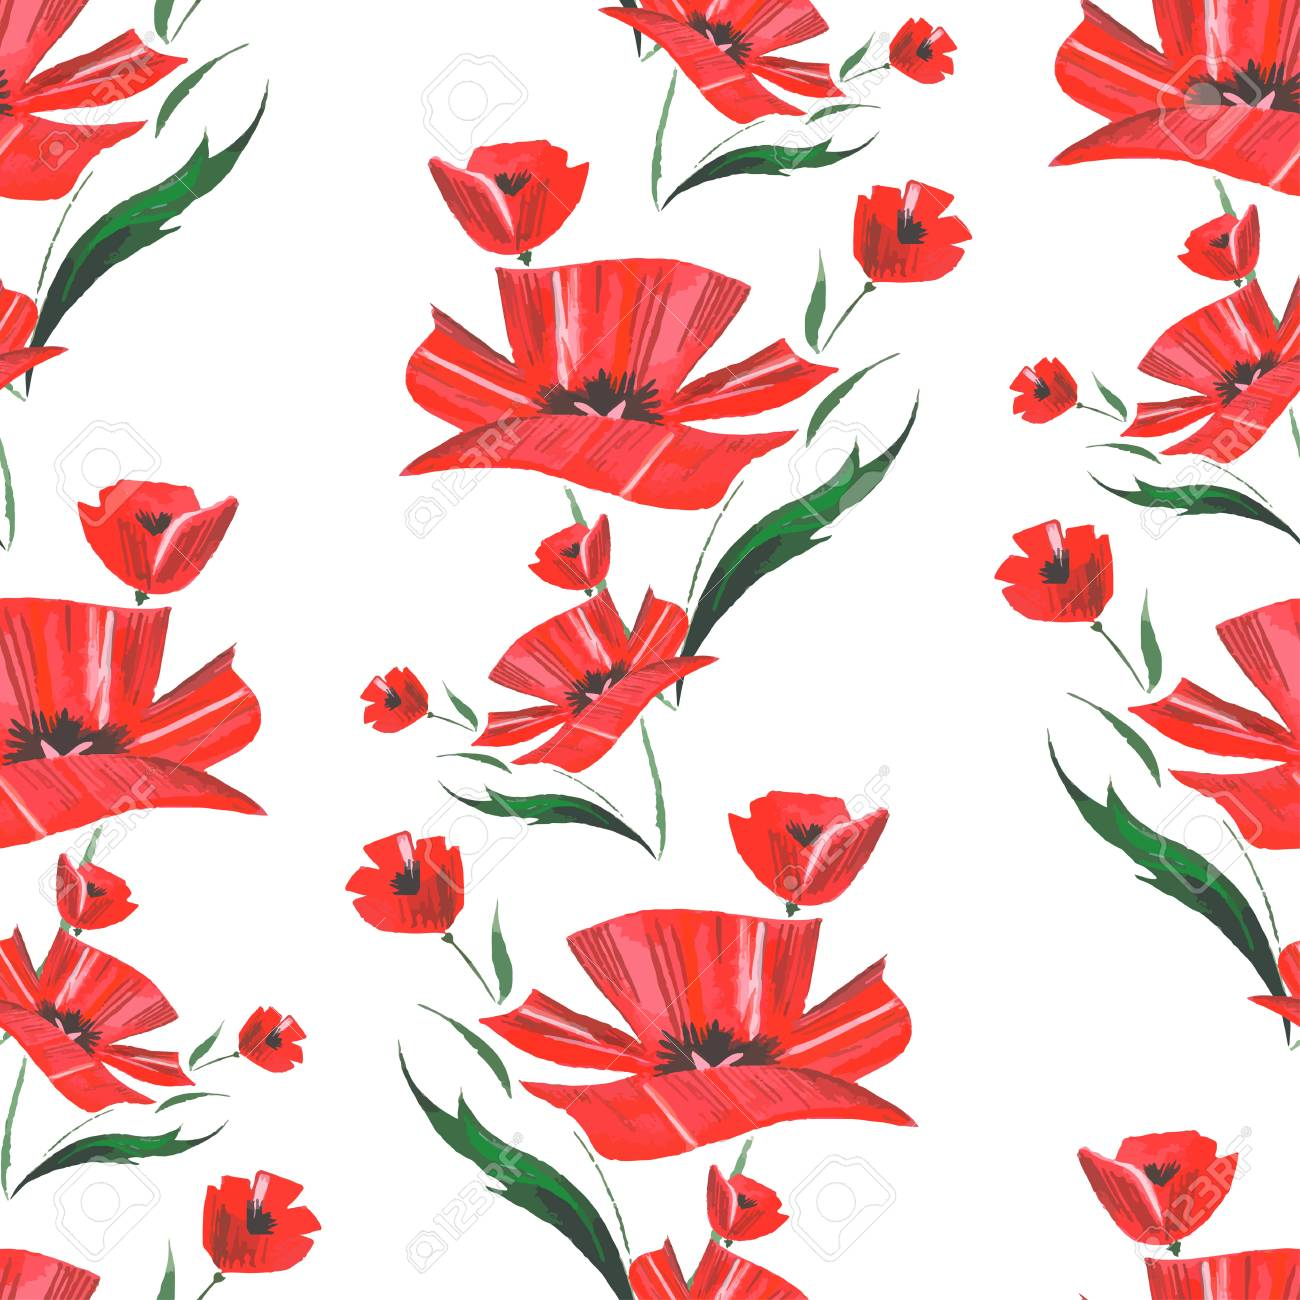 Watercolor Abstract Poppy Flower Pattern Vector Royalty Free